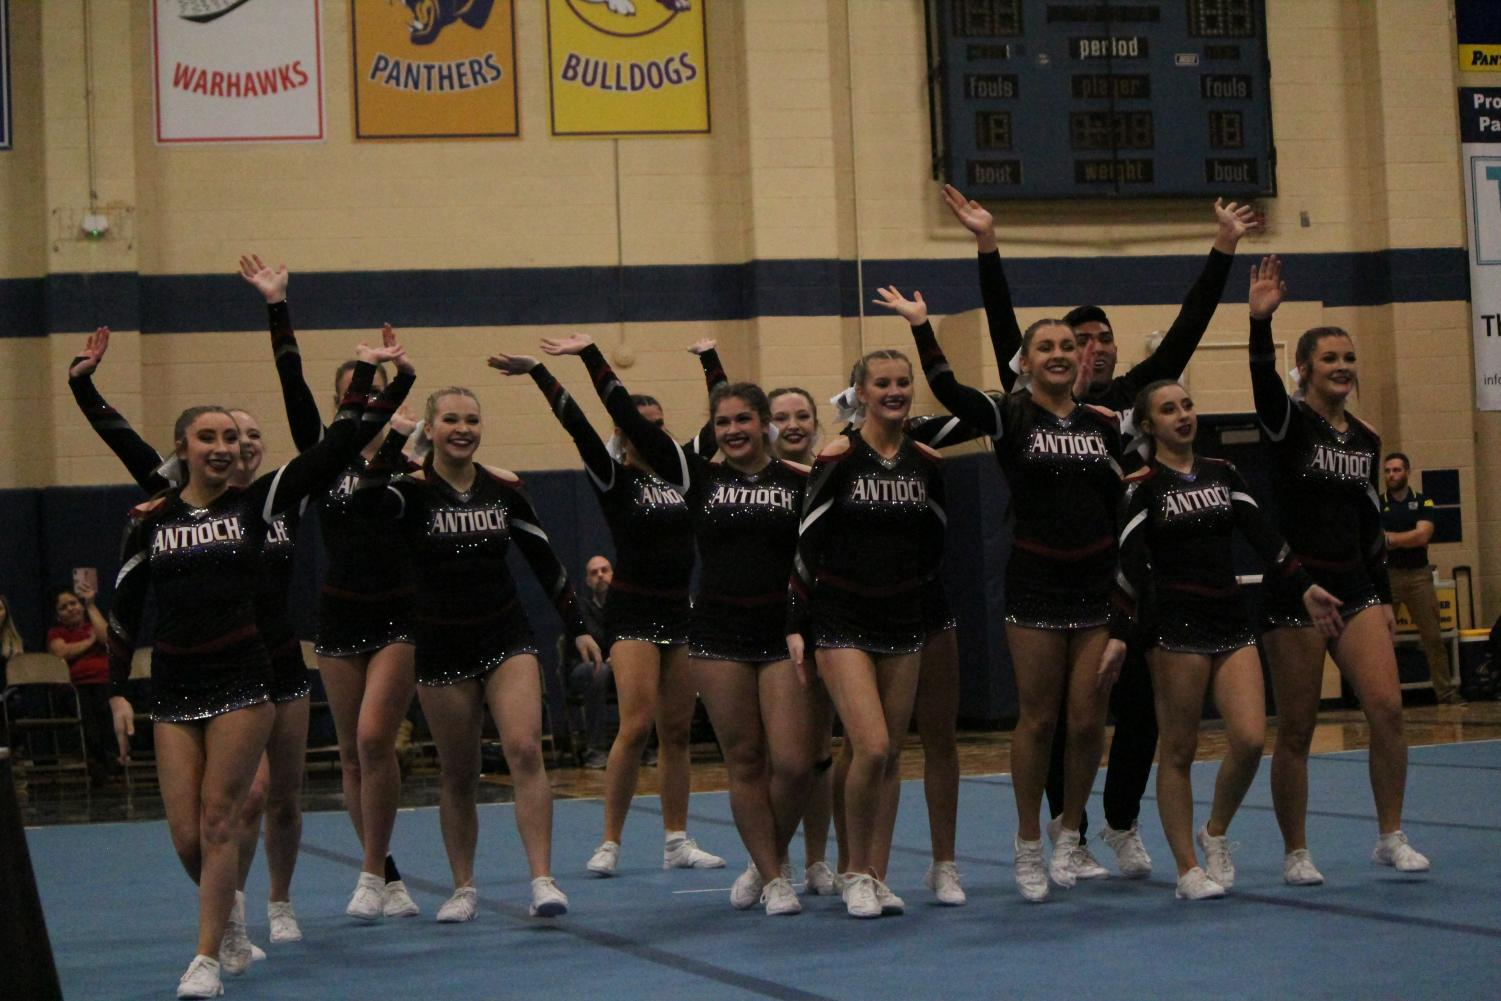 Antioch celebrates their performance at conference.